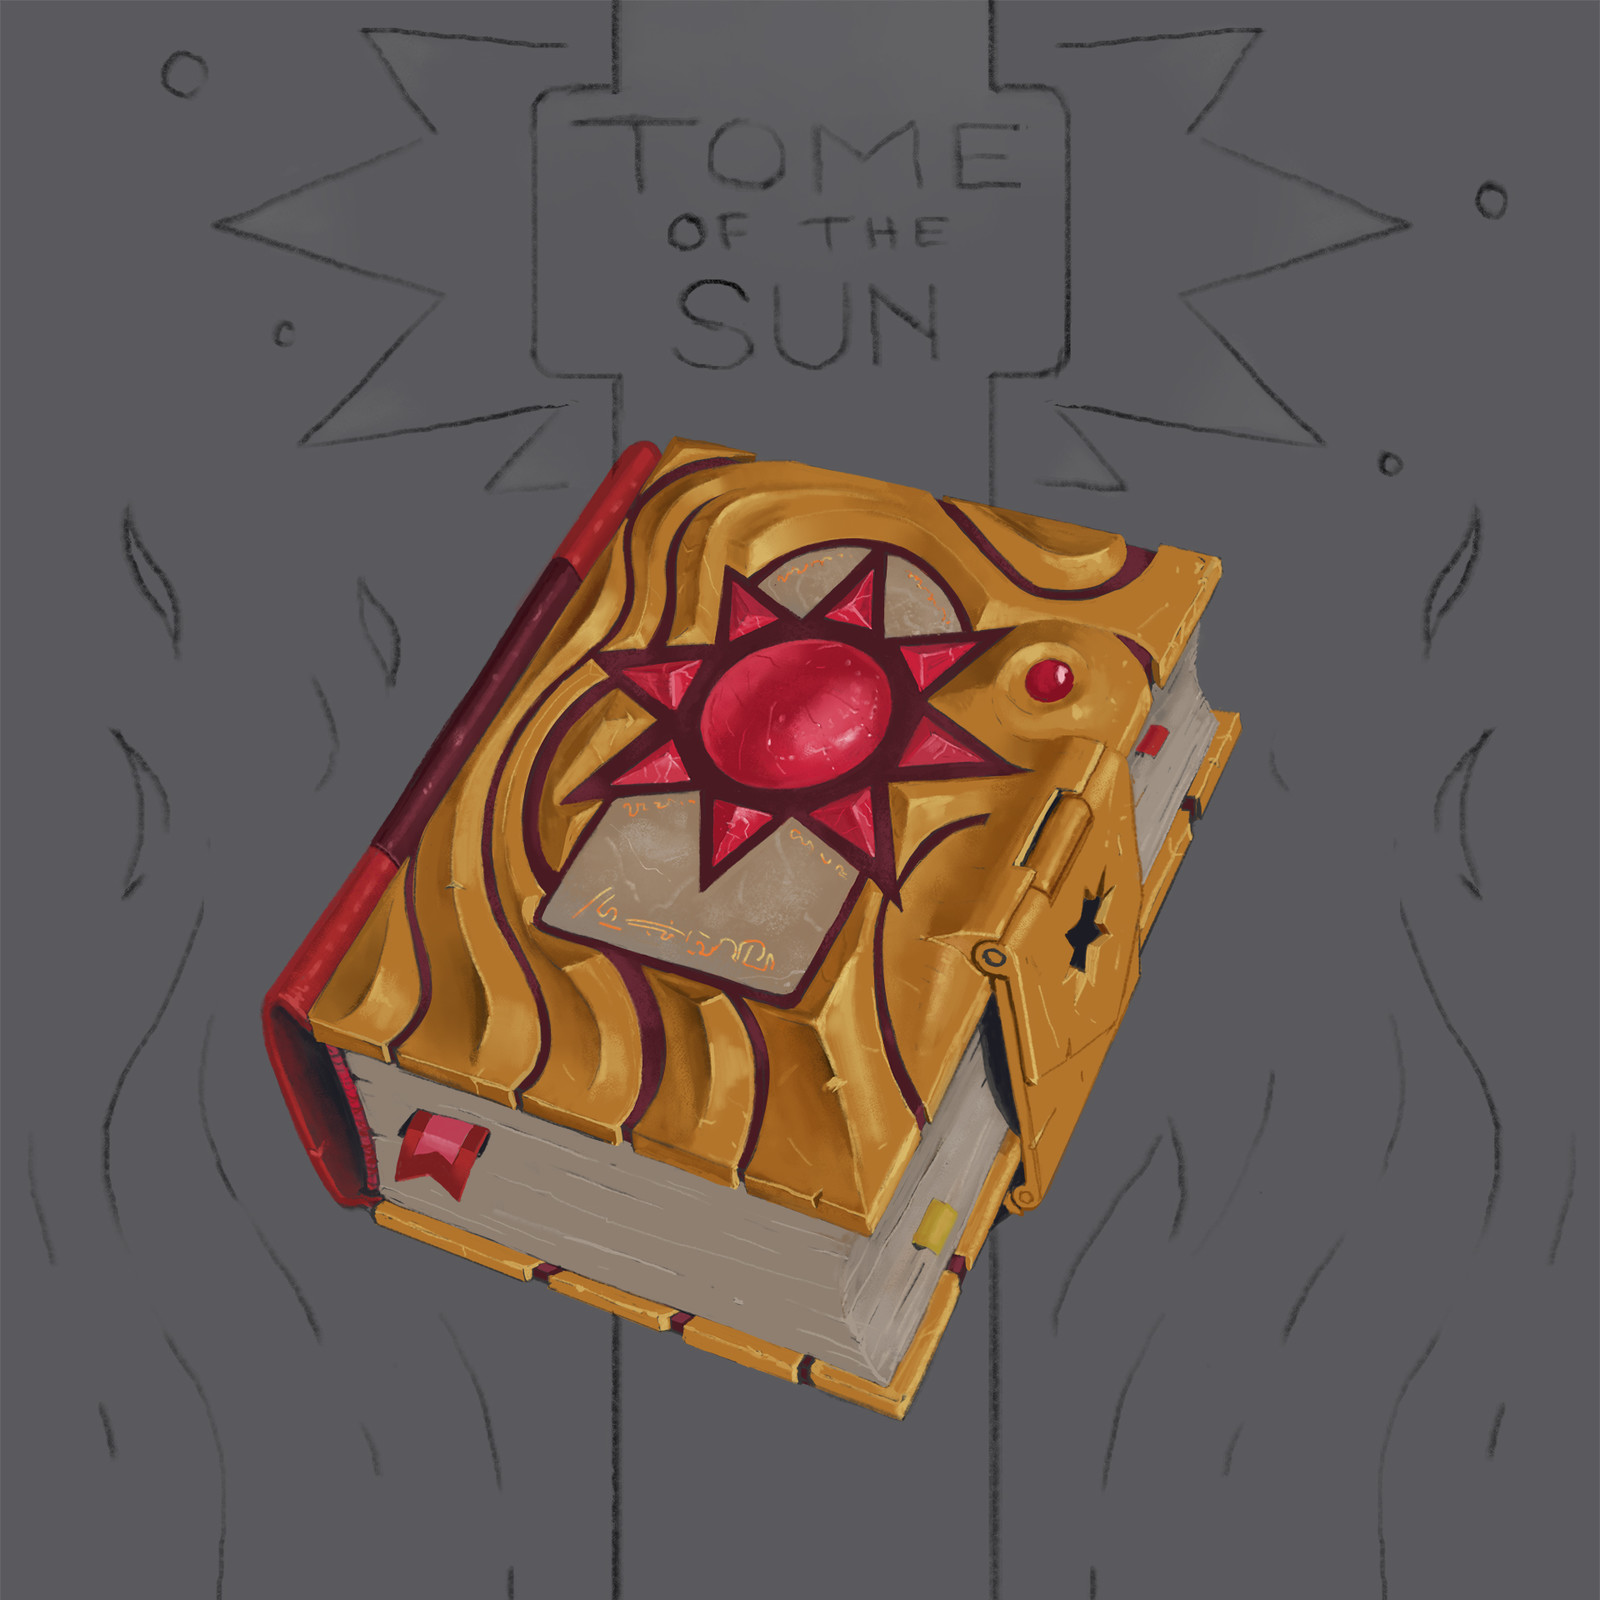 The tome of the sun.